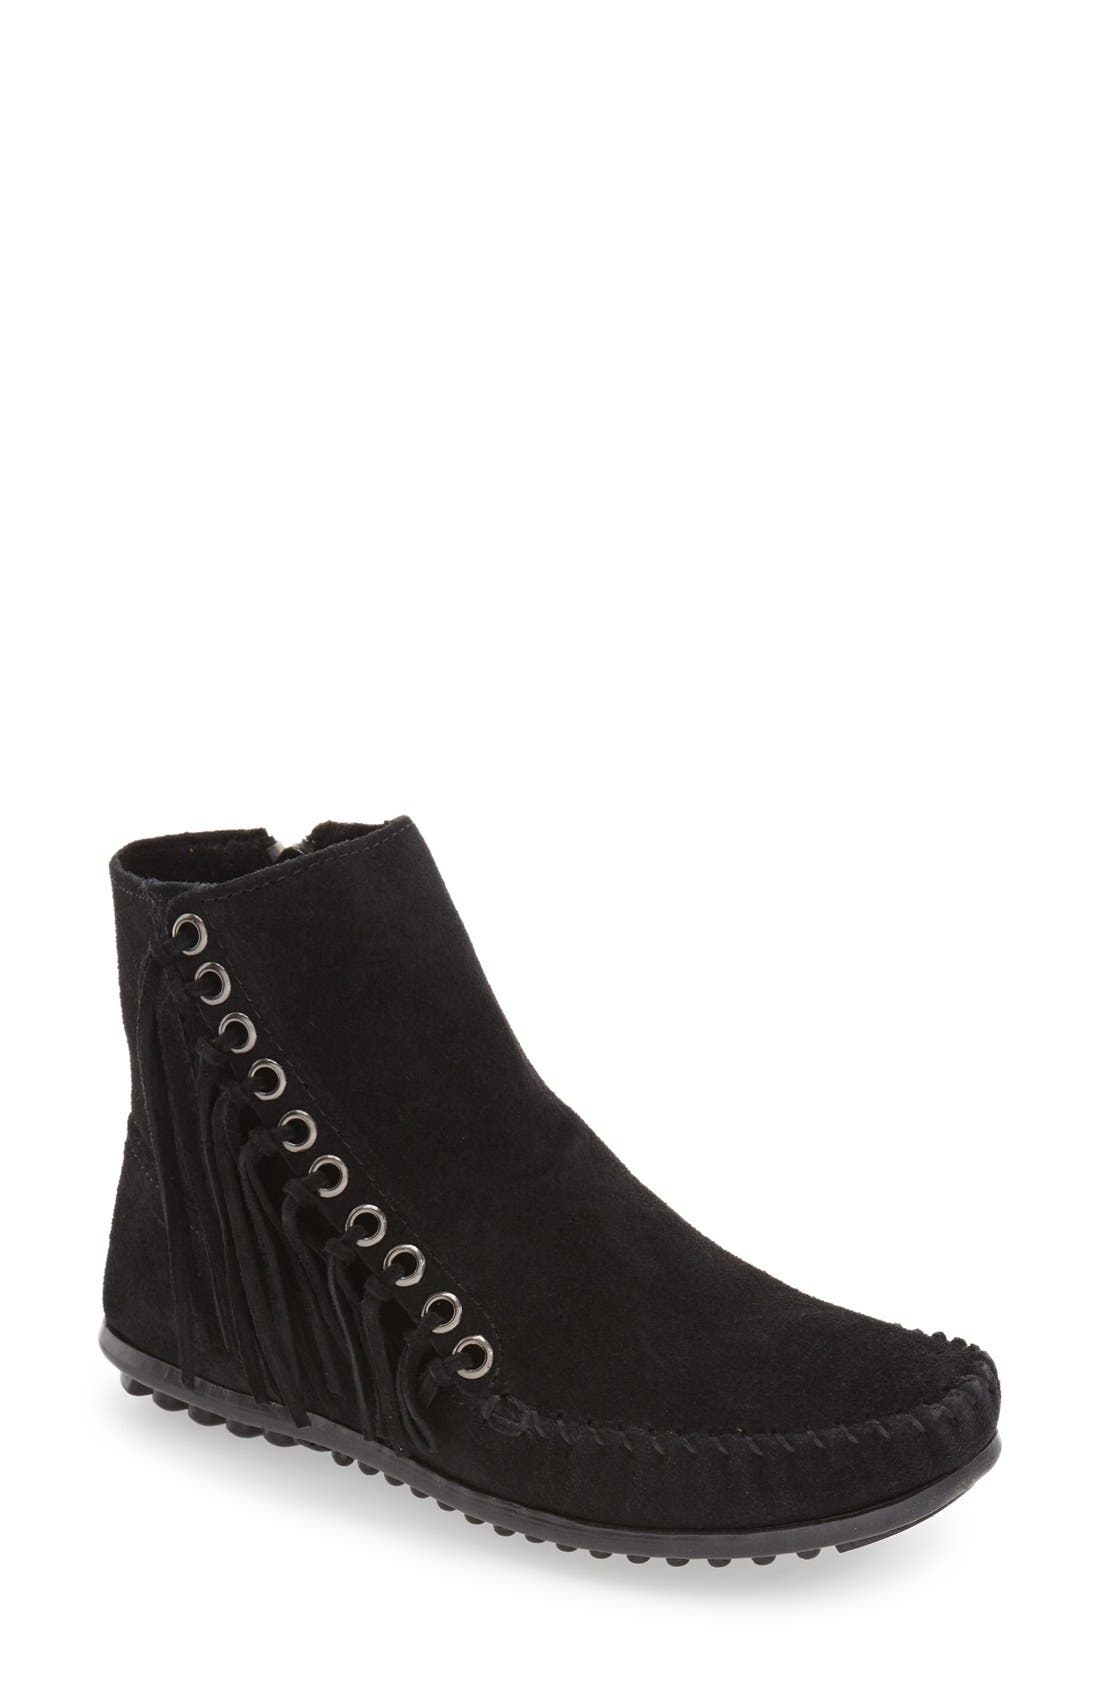 Willow Fringe Bootie,                             Main thumbnail 1, color,                             Black Suede